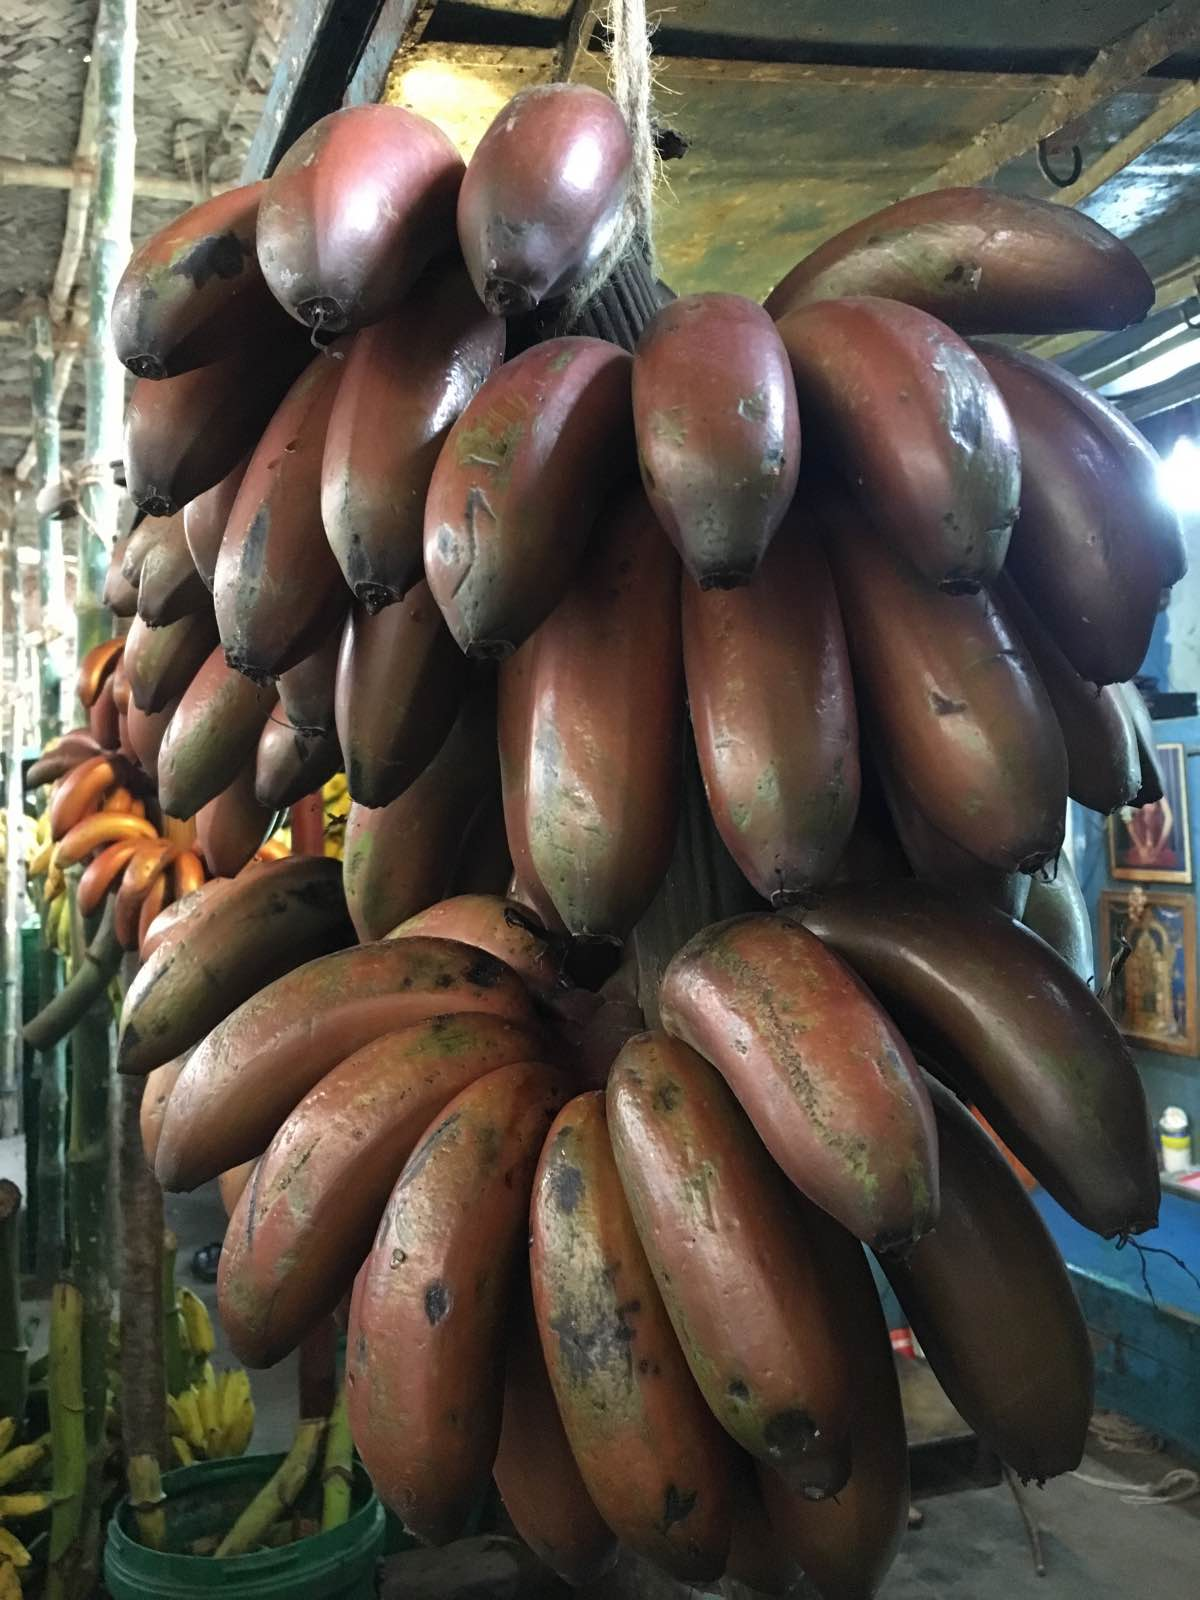 Red Bananas on a Madurai market rickshaw tour